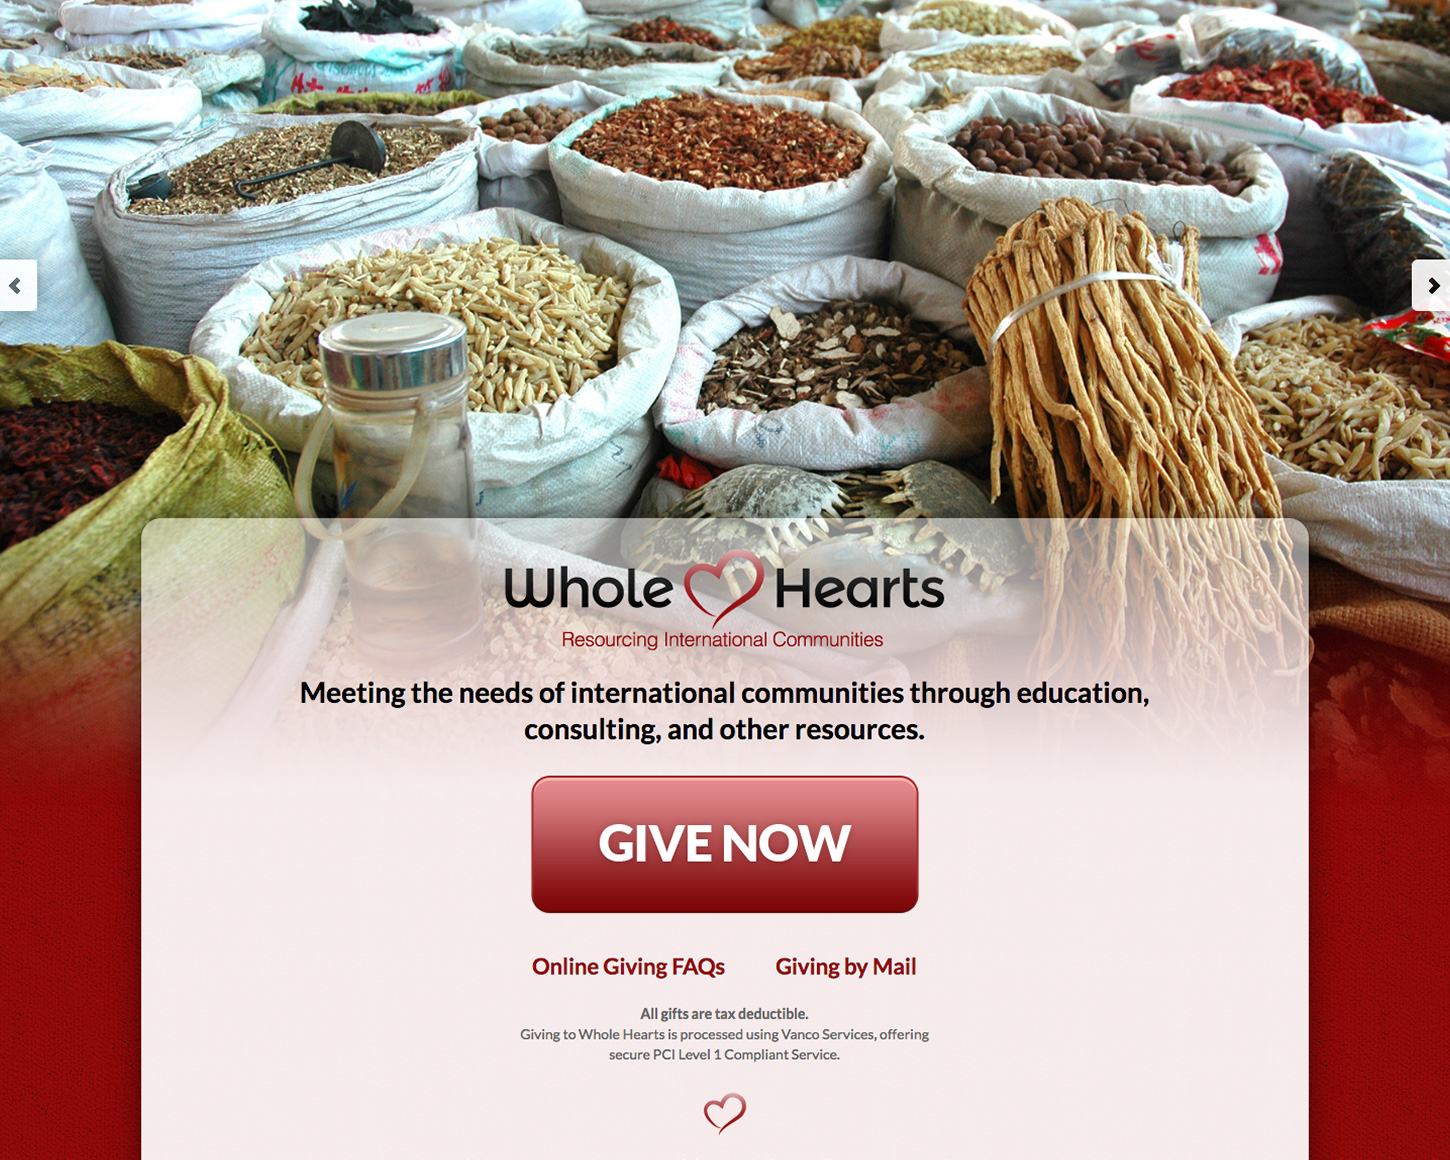 Whole Hearts website